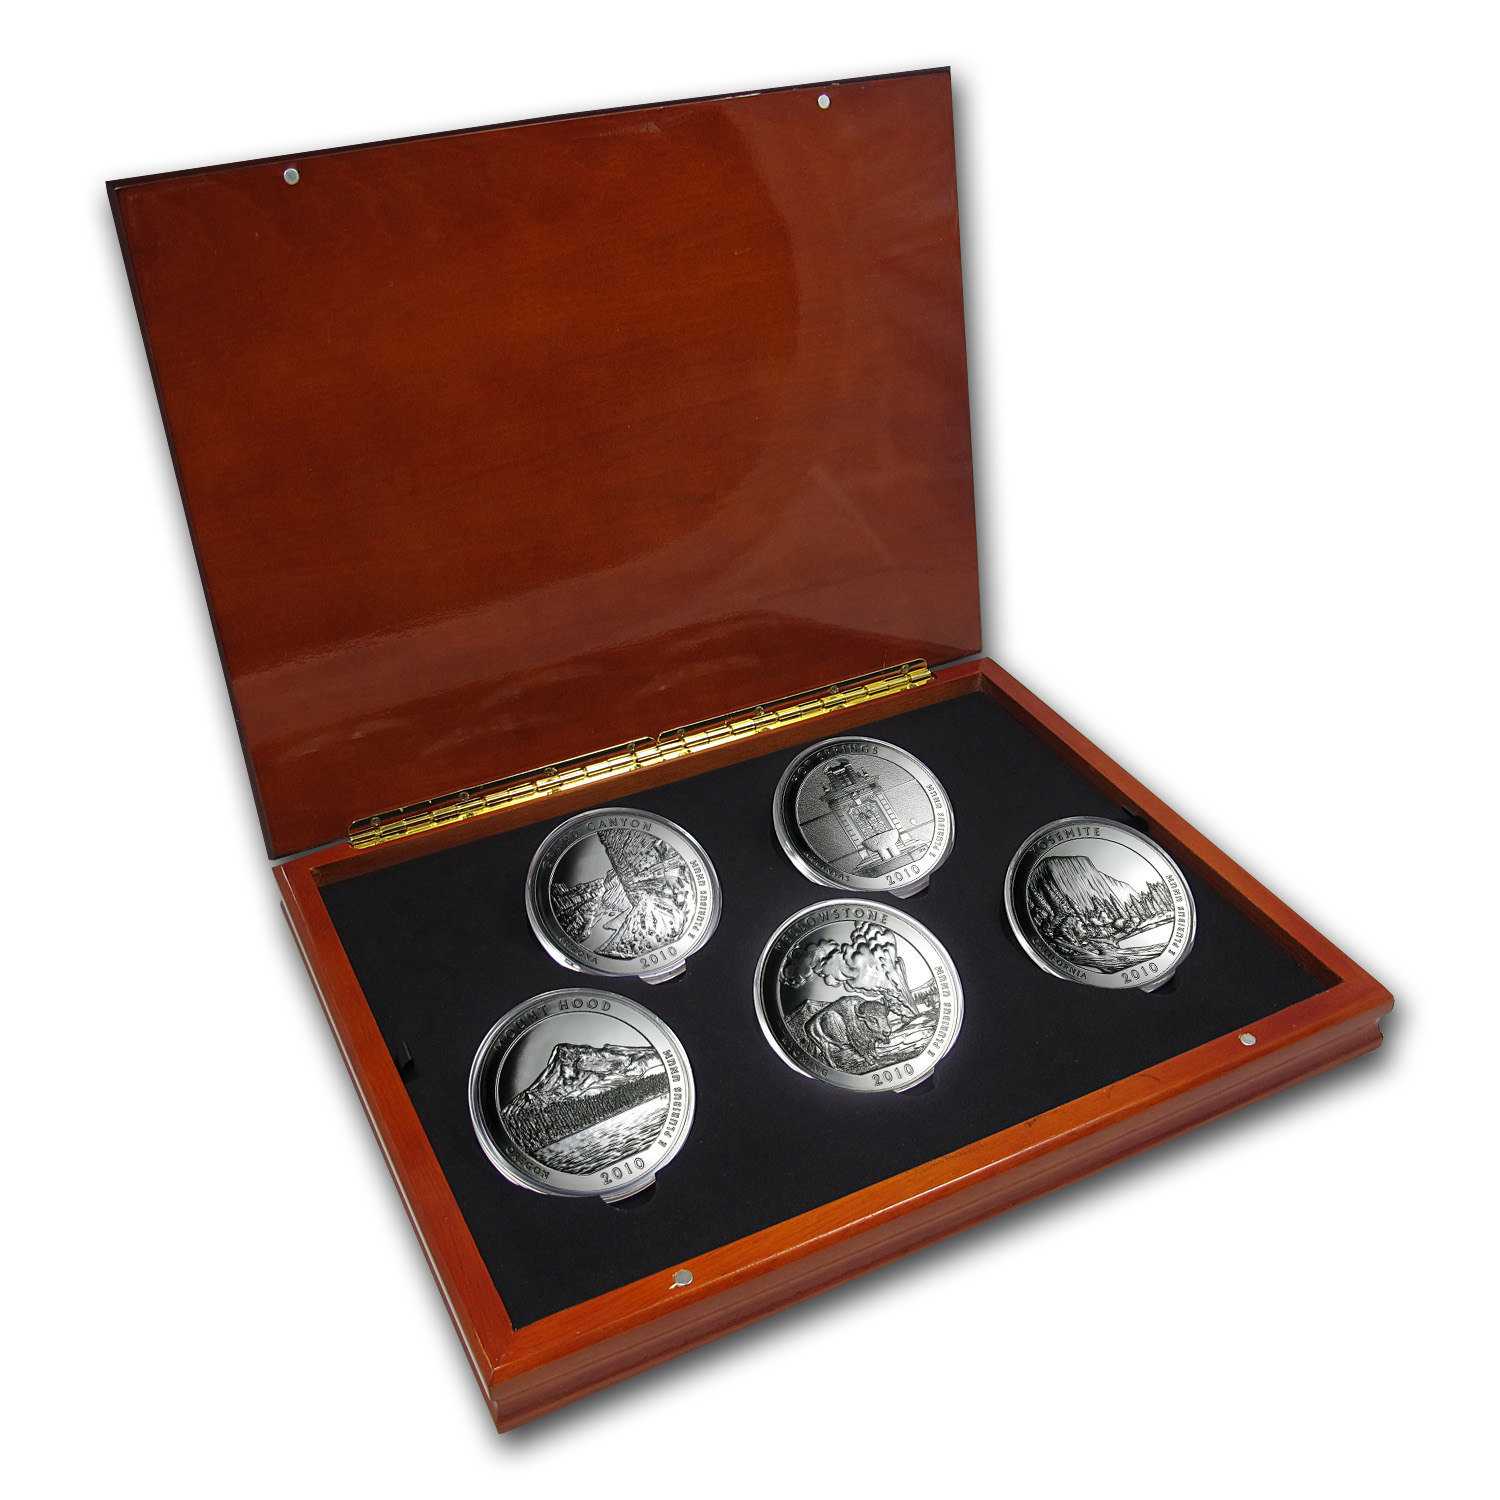 2010 5-Coin 5 oz Silver ATB Set (Elegant Display Box)